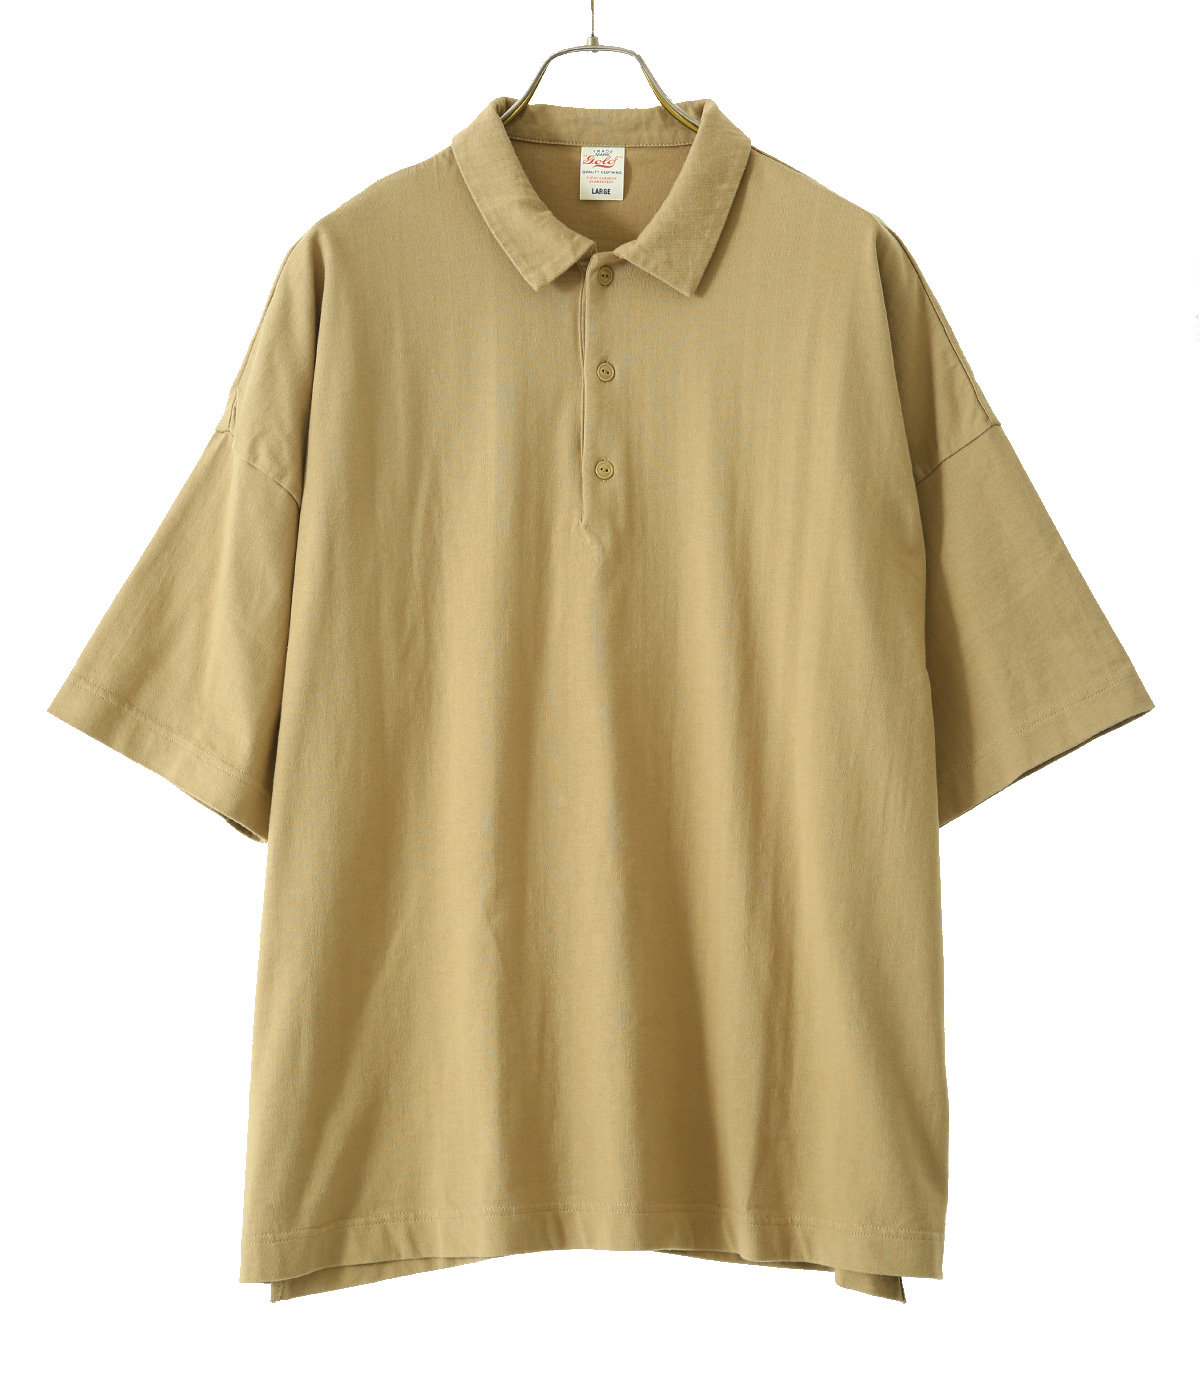 30/2 HEAVY SUVIN COTTON S/S BIG POLO SHIRT